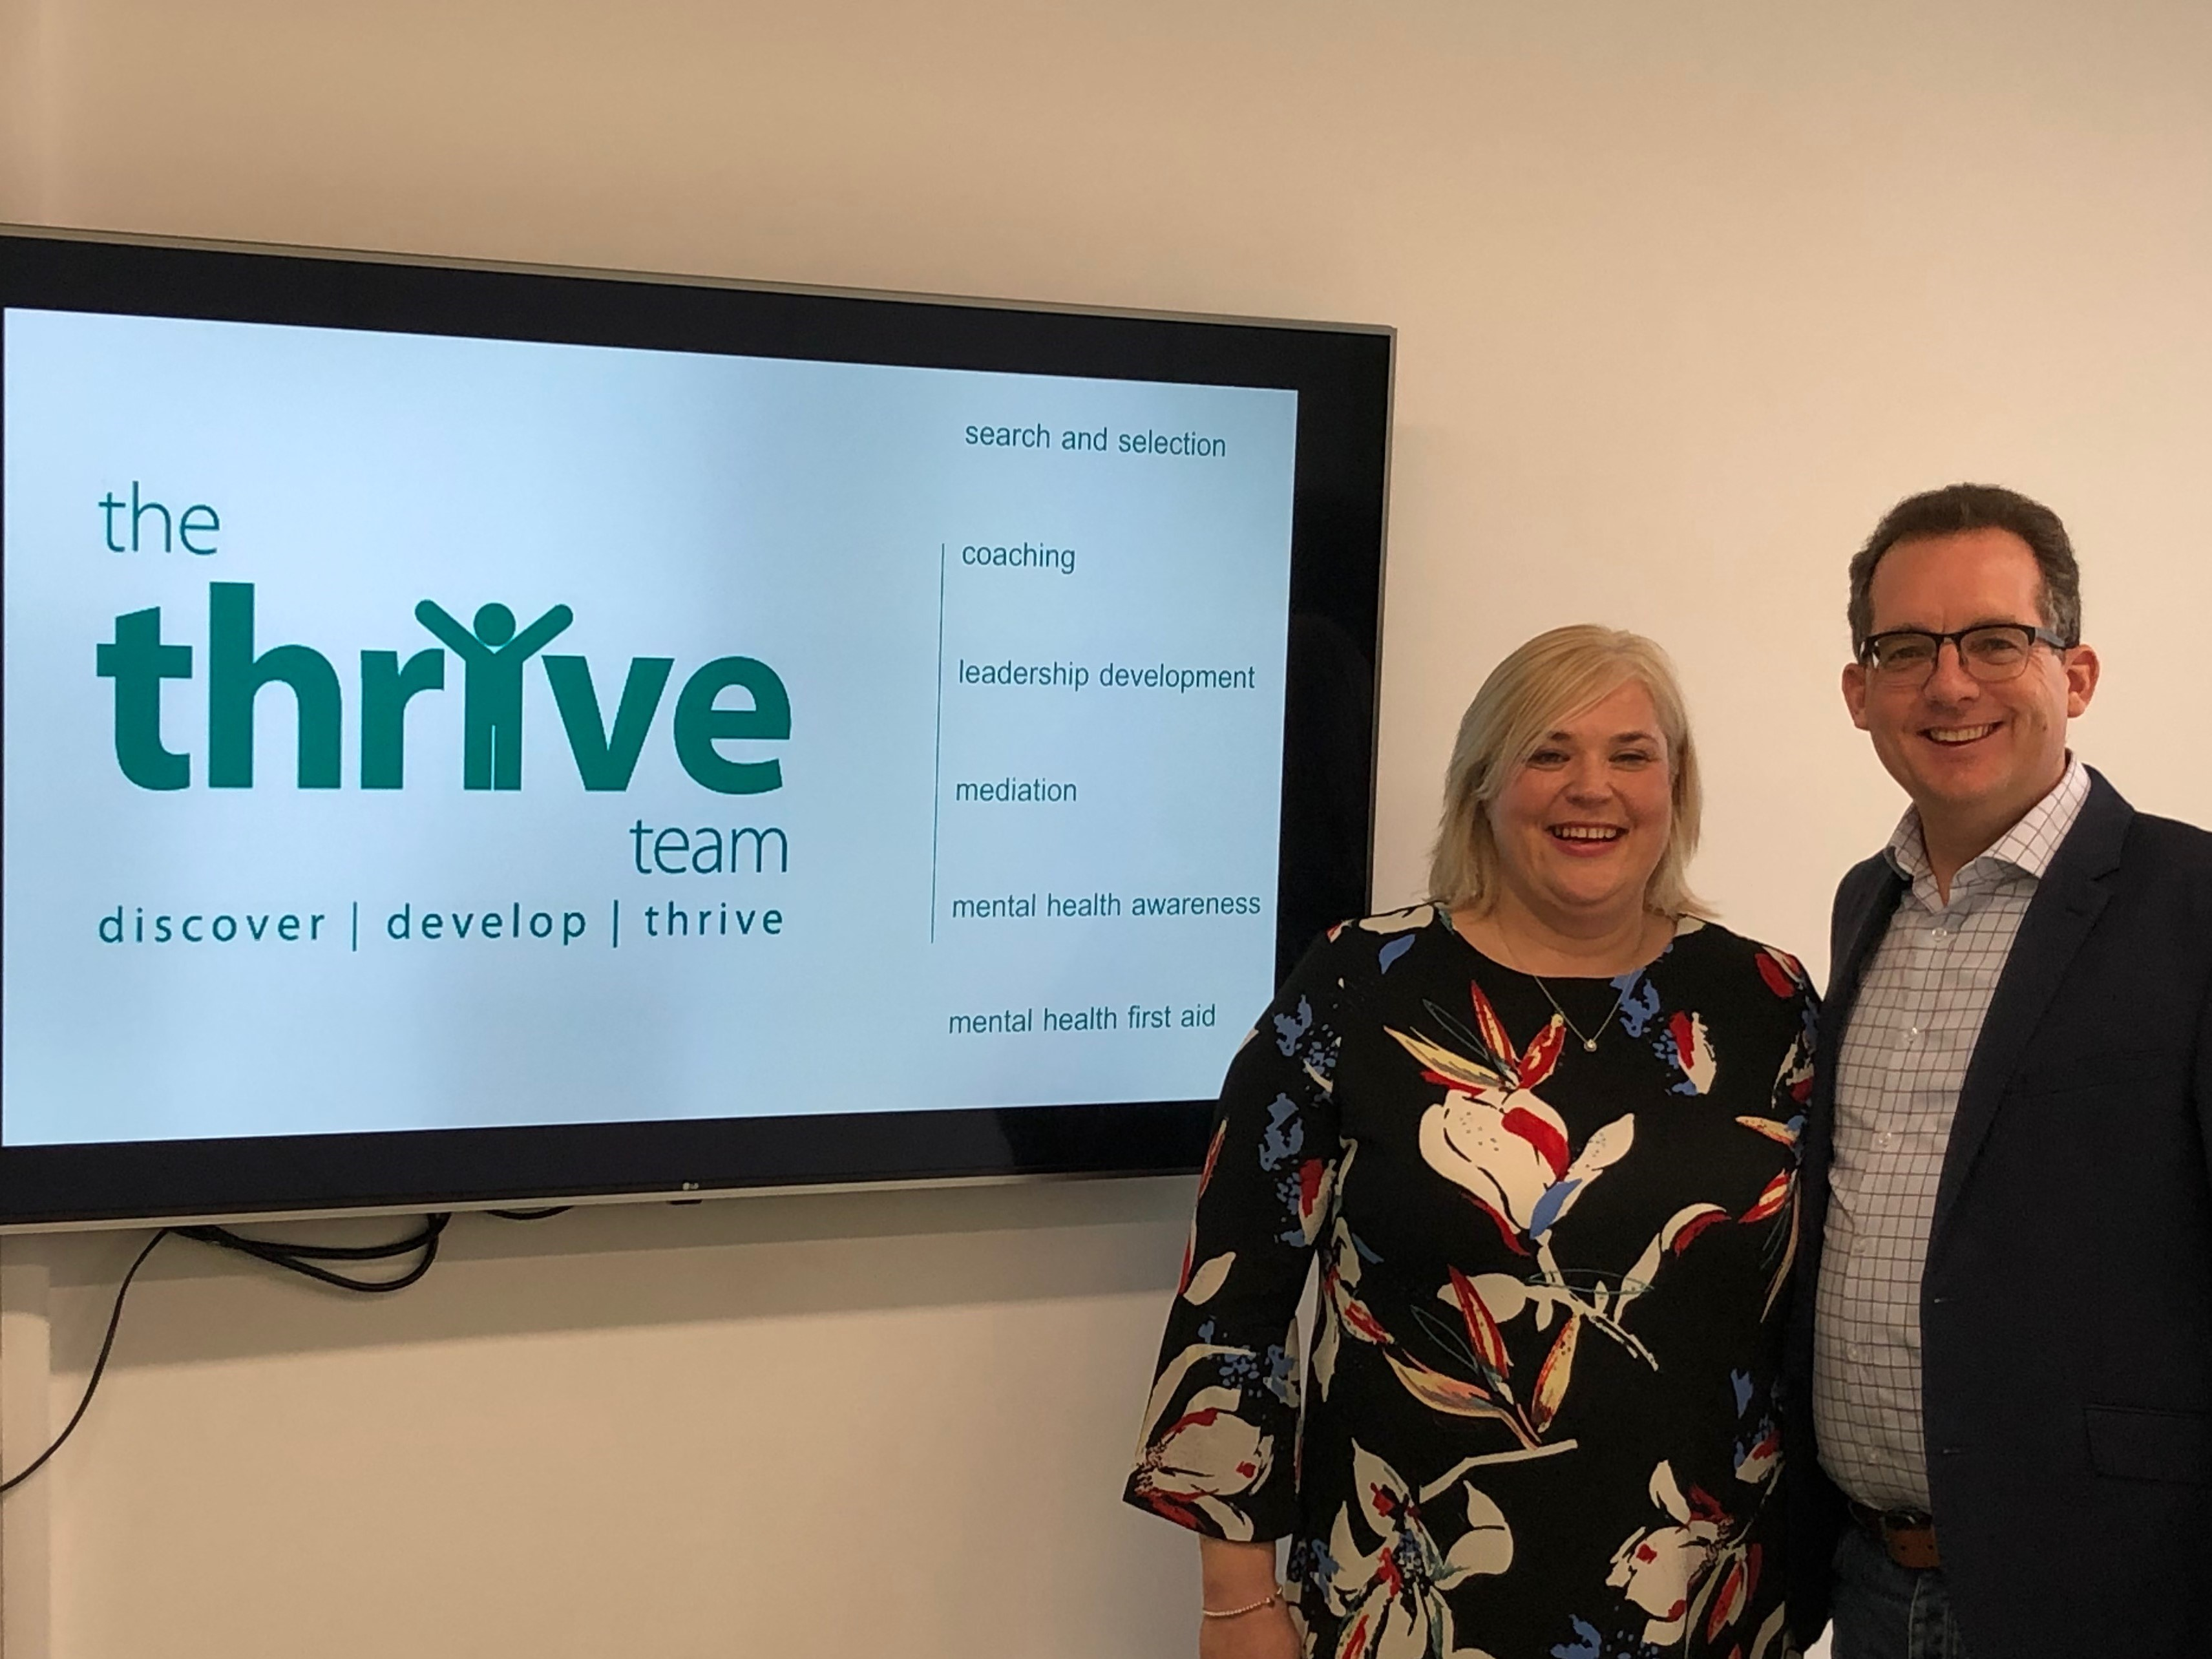 Co founders of the Thrive Team  Alison Trodd and Martin Grady